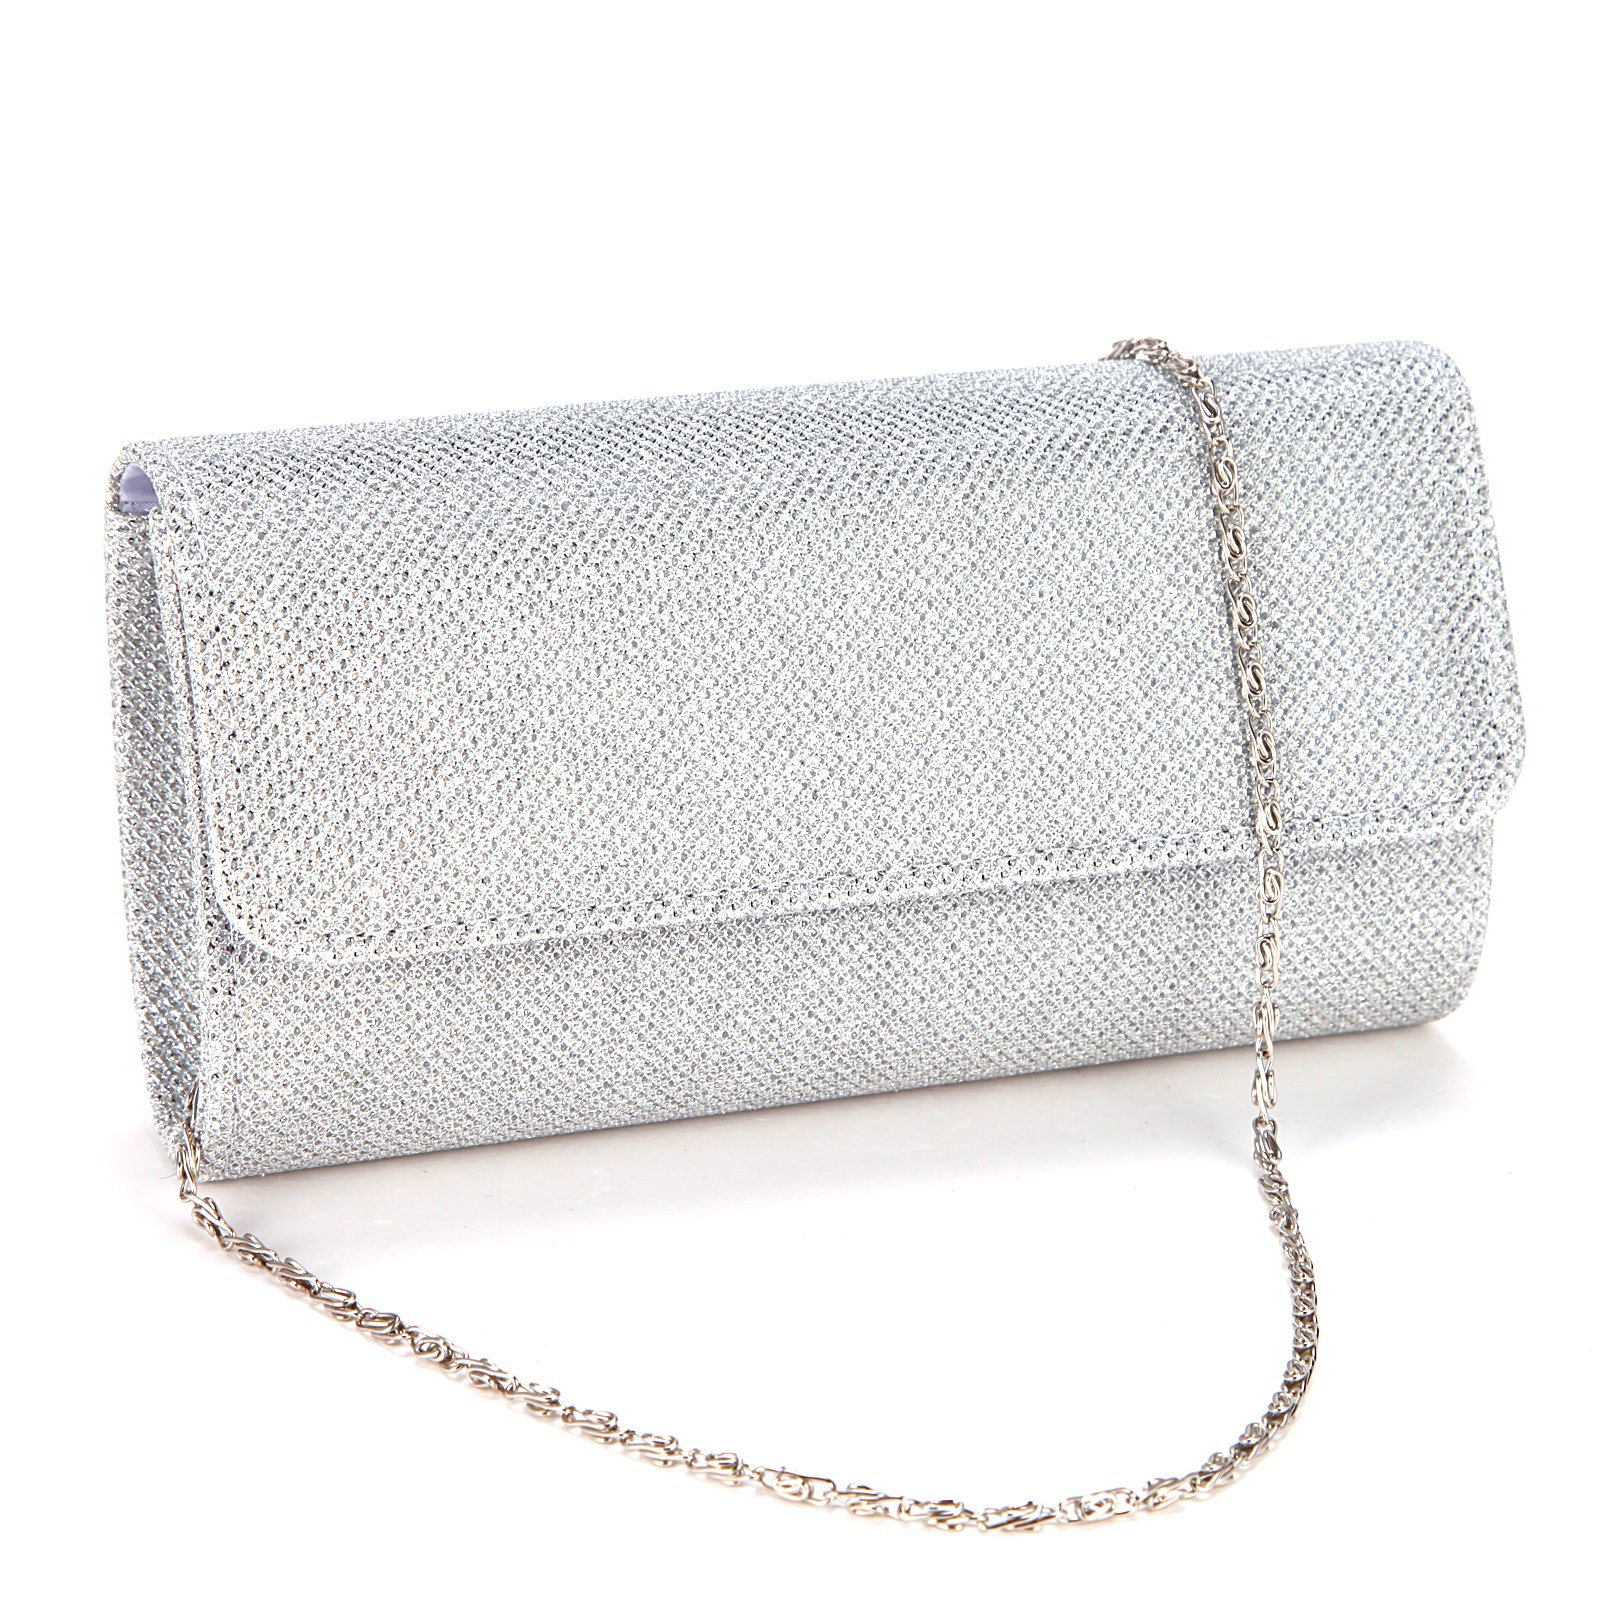 Ladies Evening Party Small Clutch Bag Bridal Purse Handbag Cross Body Tote by Anladia (Image #1)